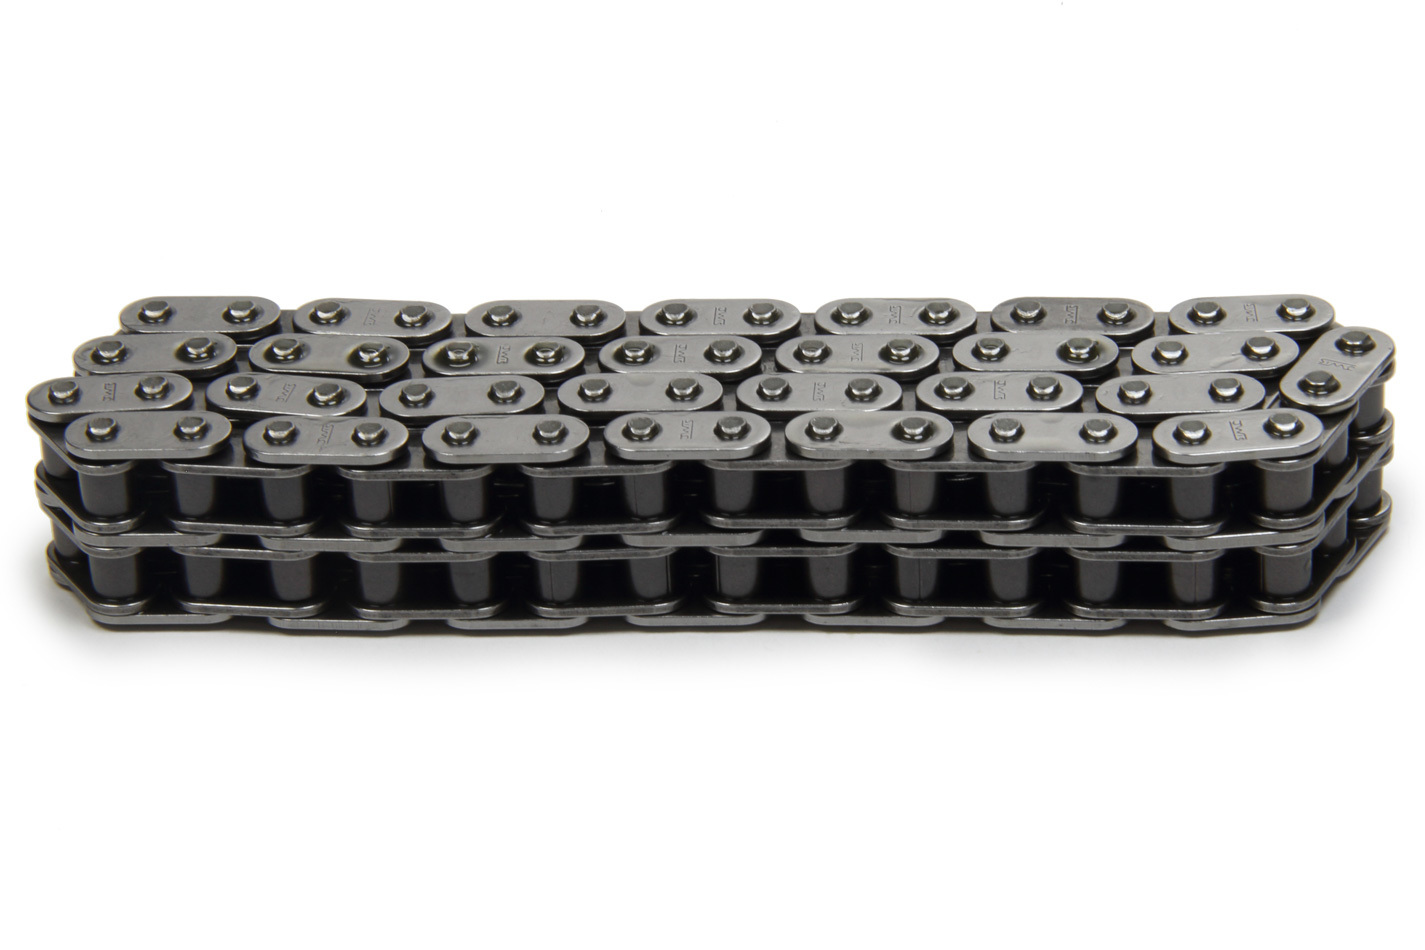 Jp Performance Replacement Timing Chain 58-Links Perf. Series